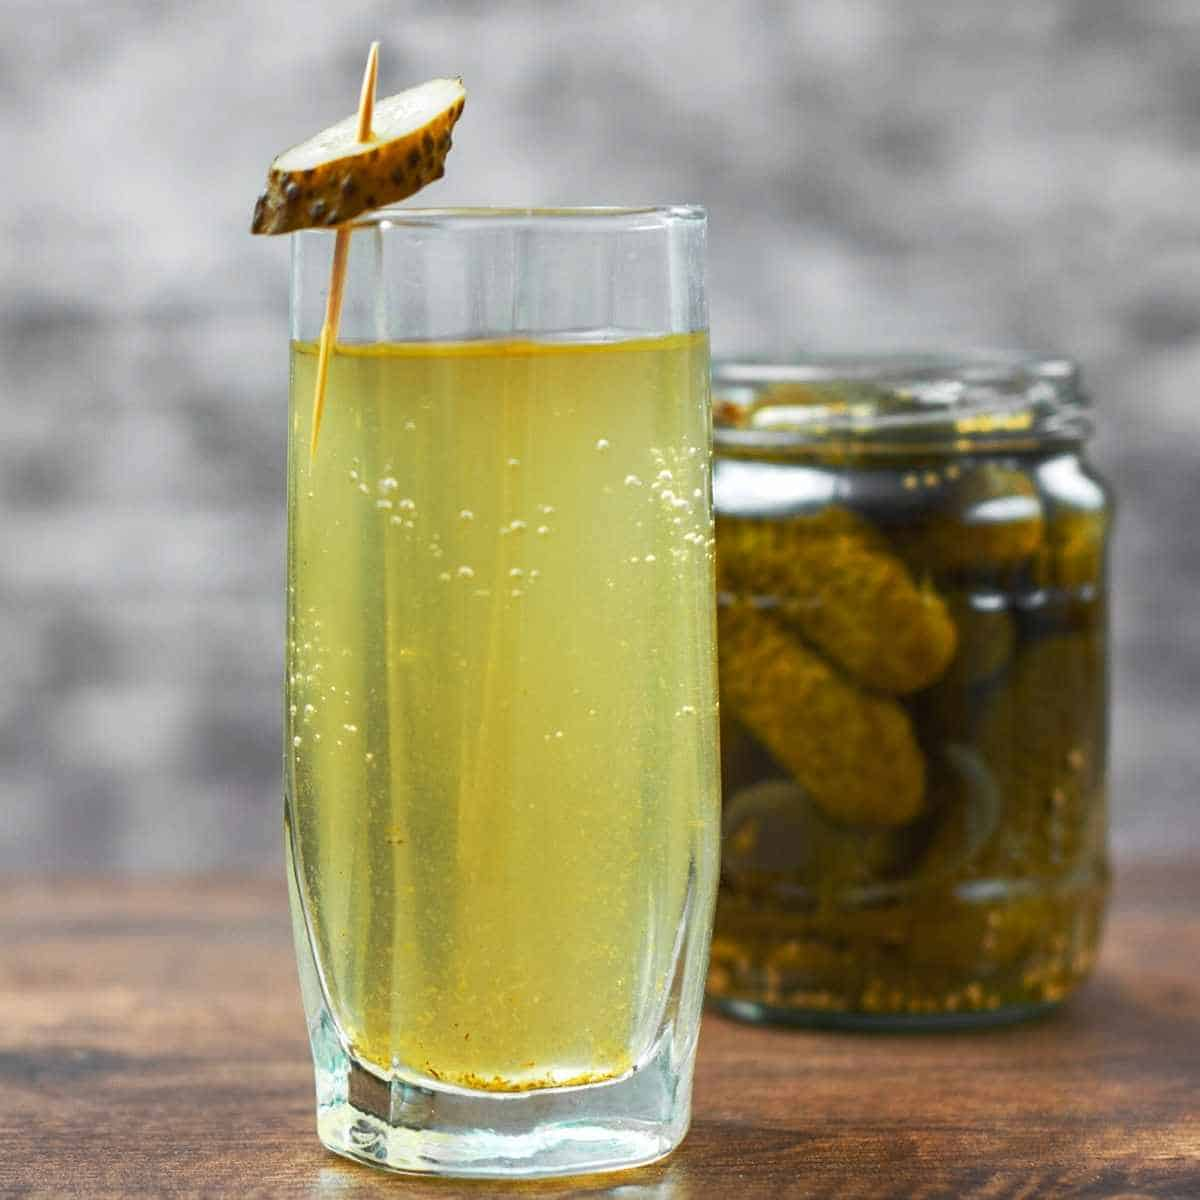 glass of pickle juice - How to Fix Whole Body Aches on Keto: Advice from a Nutritionist